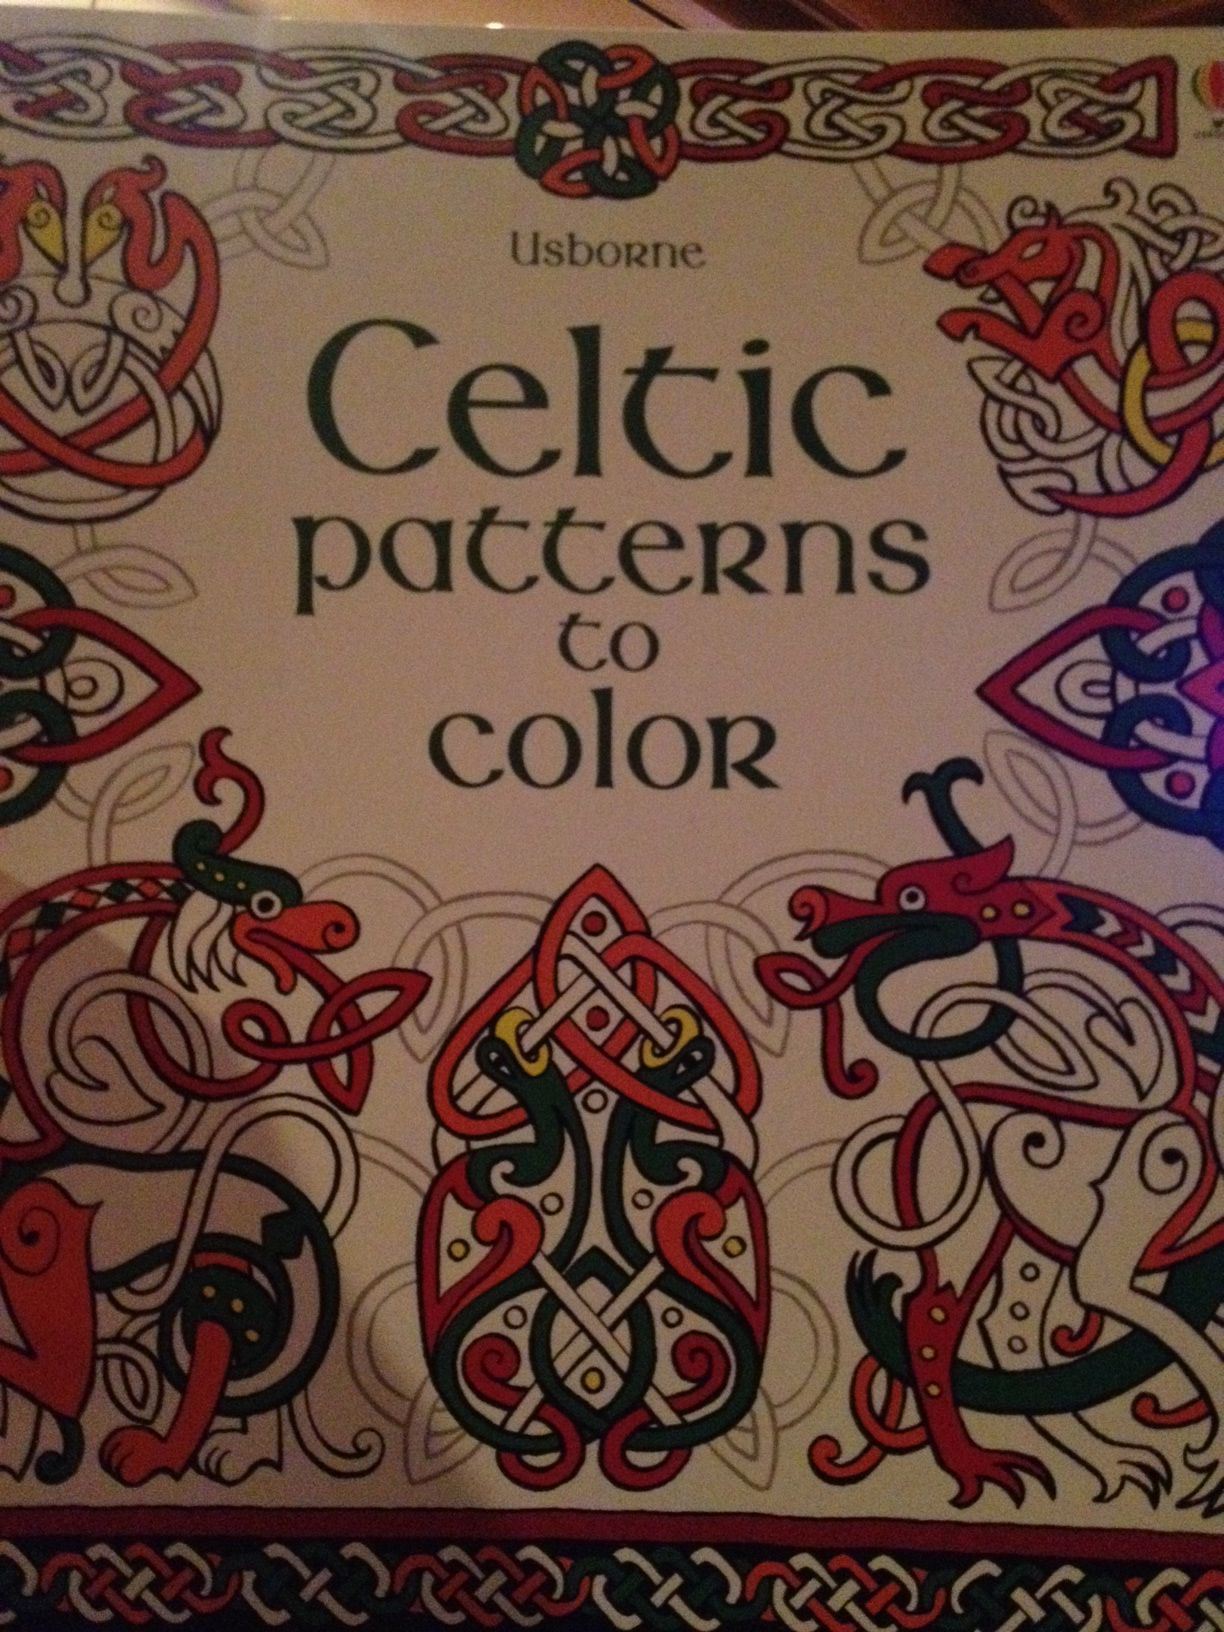 Celtic Patterns to Color  $5.99  Join our UBAM team on a Trip to Ireland in July 2015  www.familyreadinghabit.com